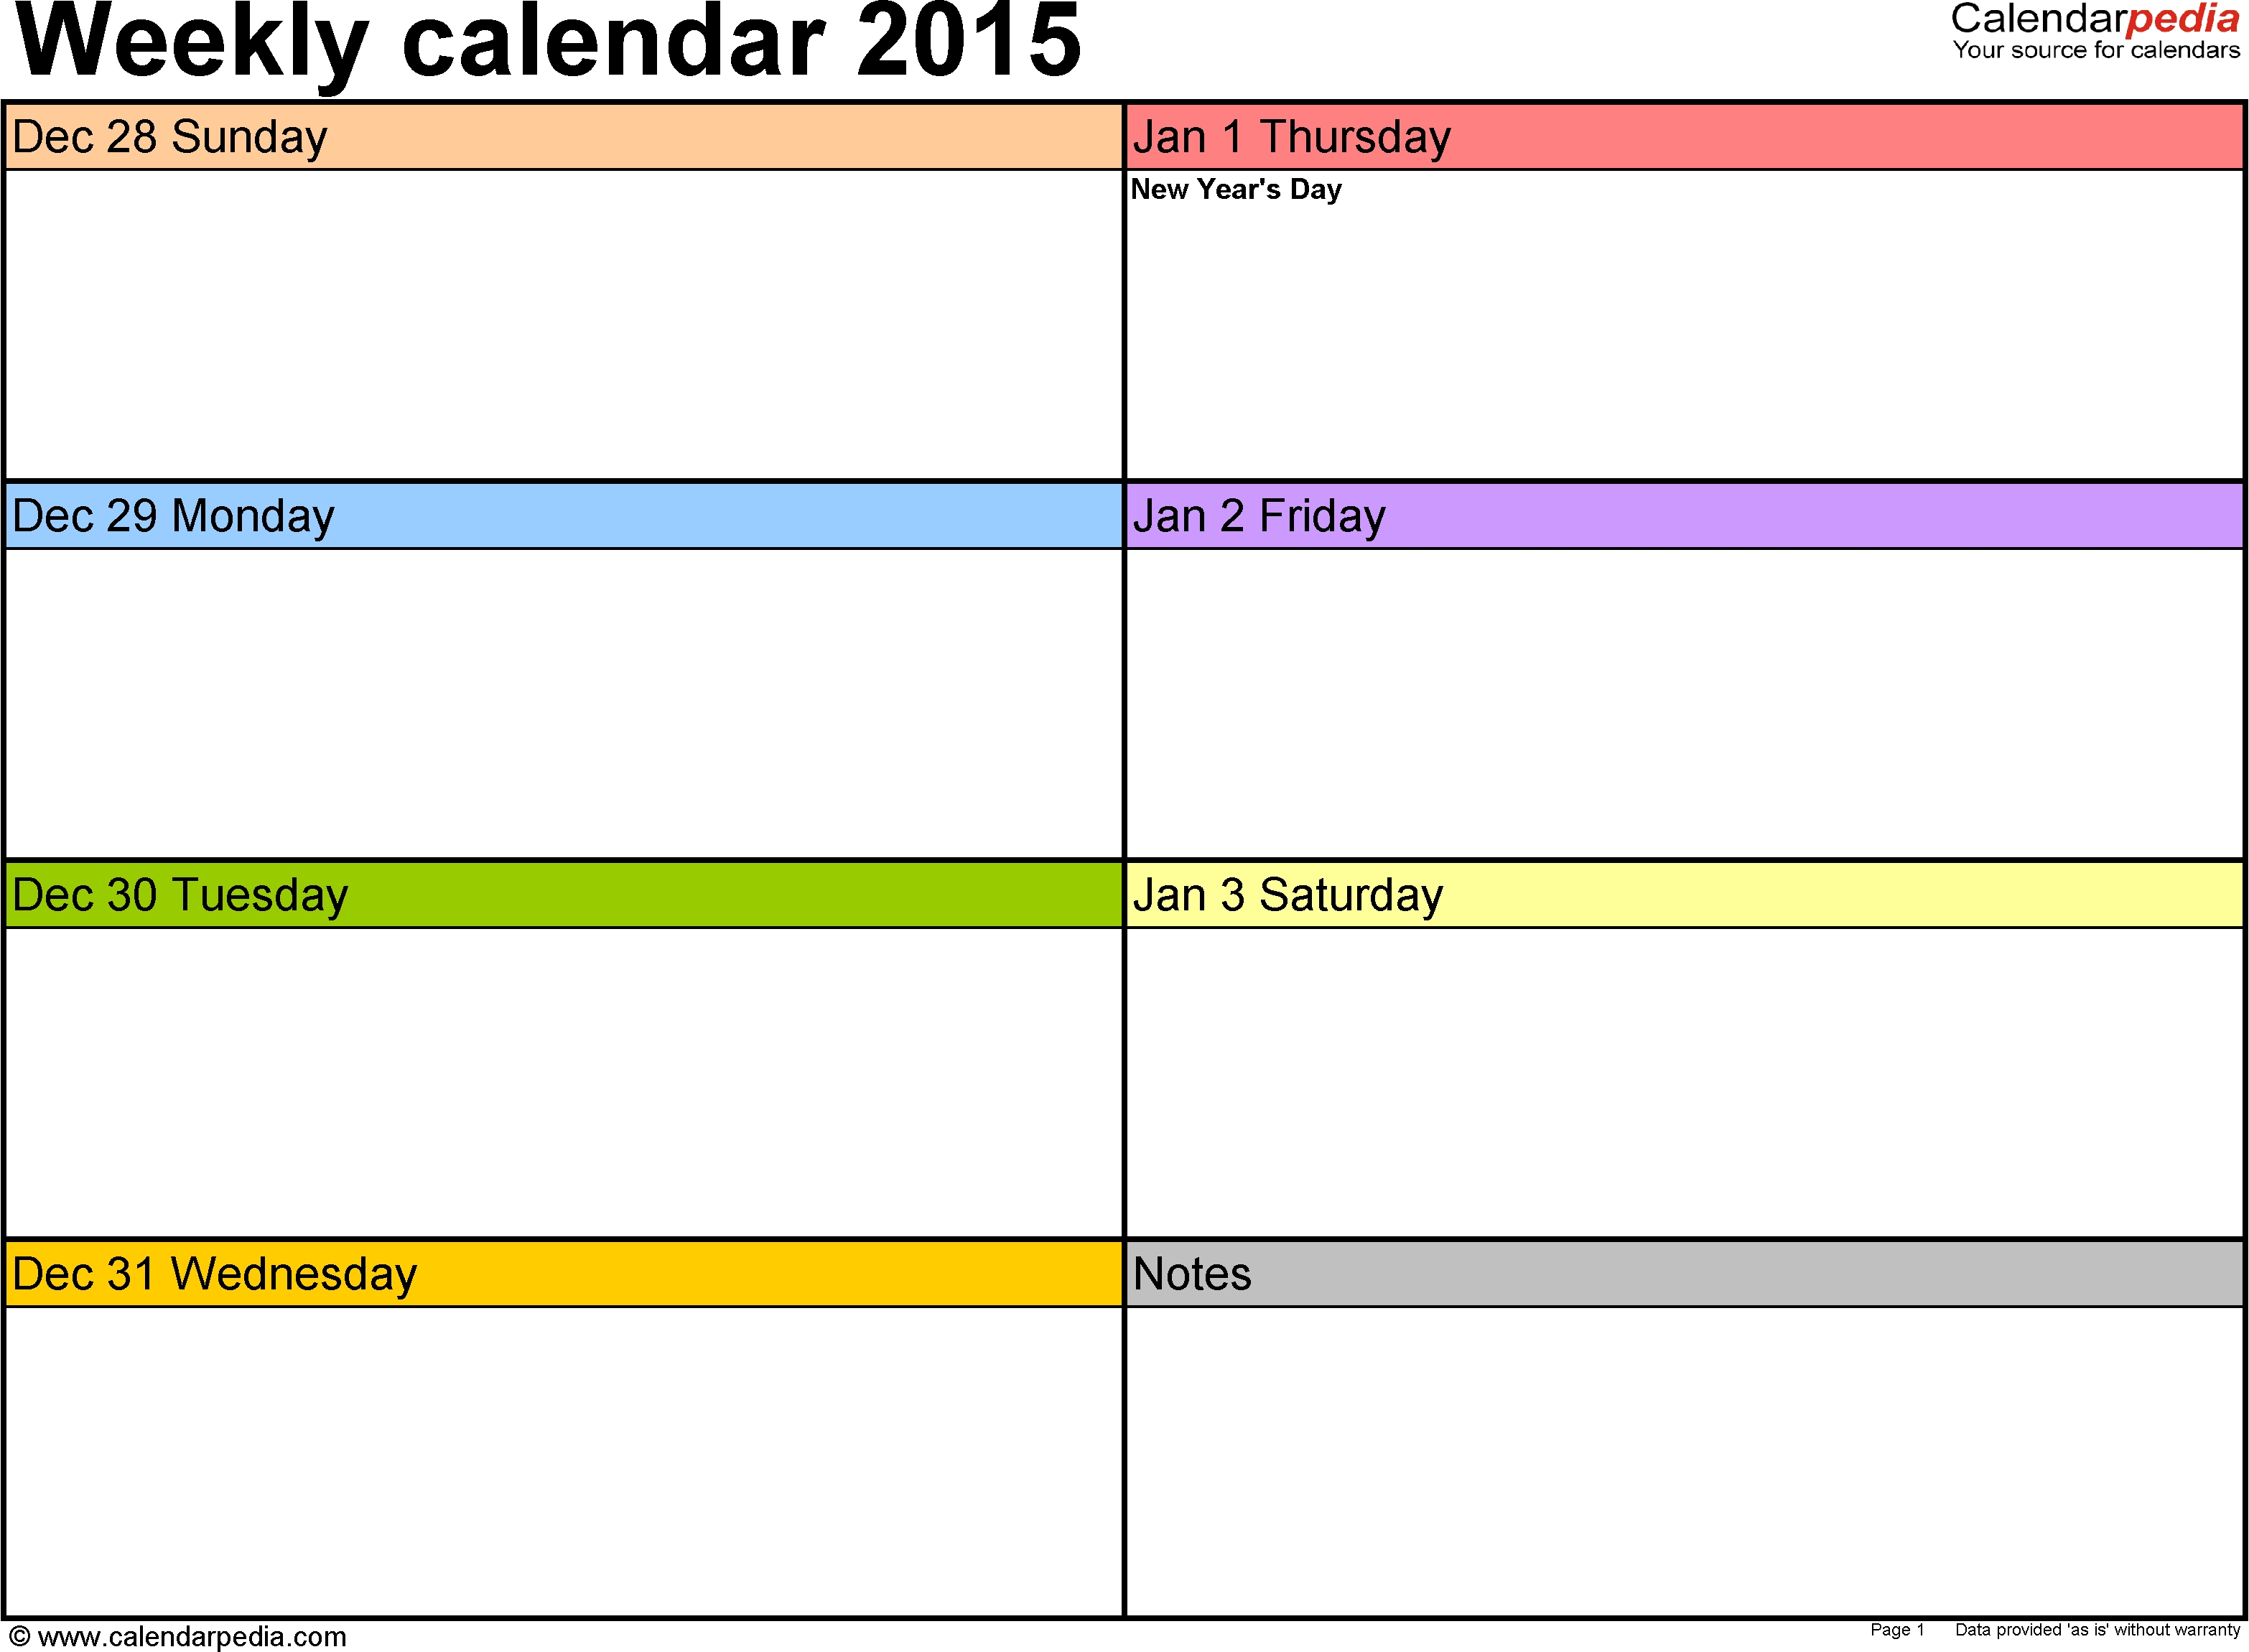 Weekly Activity Calendar Template For Excel Free Printable Templates pertaining to Samples Of Monthly Activity Calendar Templates And Designs